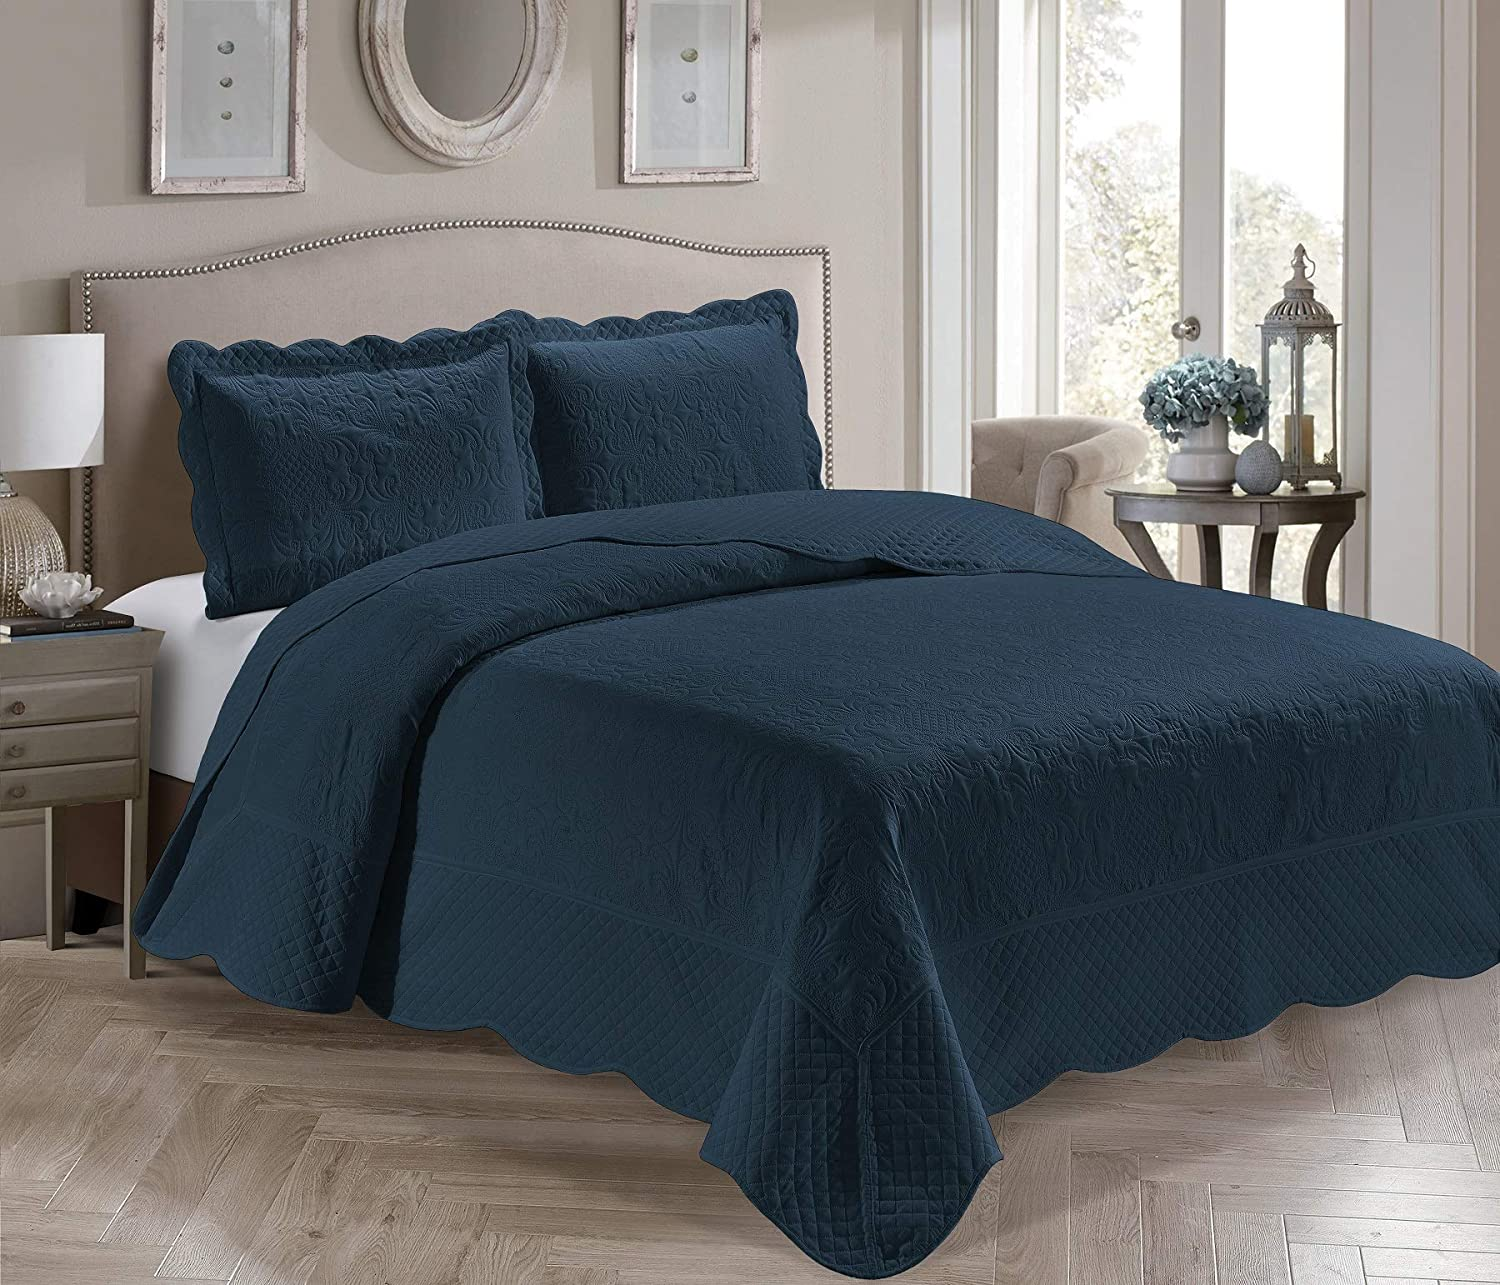 Home Collection 3 Piece King/California King Over Size Embossed Solid Navy Blue Color Coverlet Bedspread New # Veronica